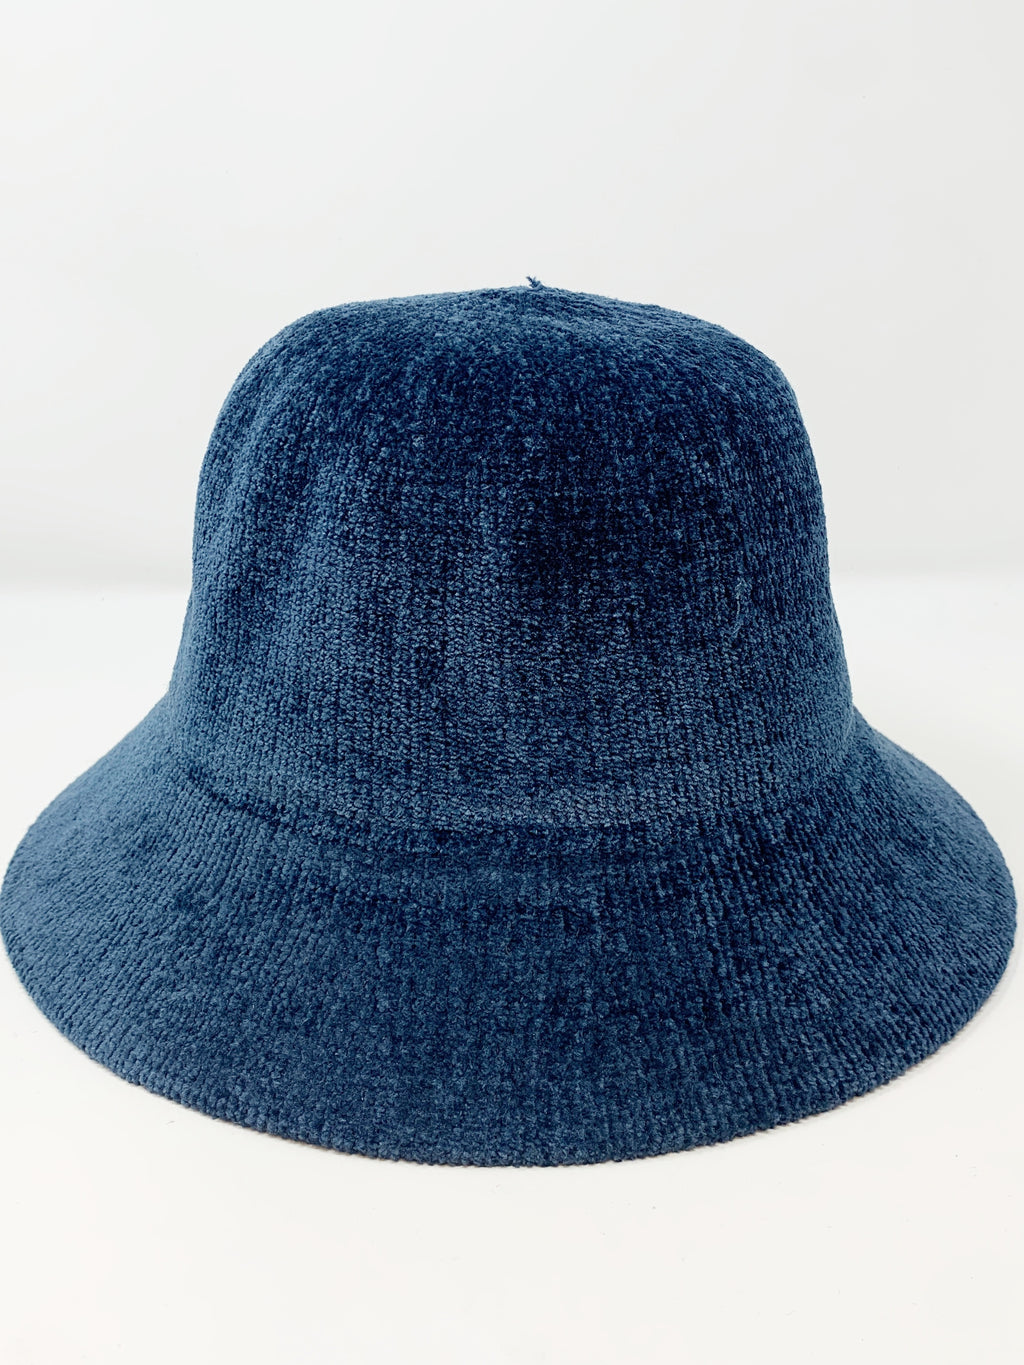 Chenille Bucket Hat in Navy